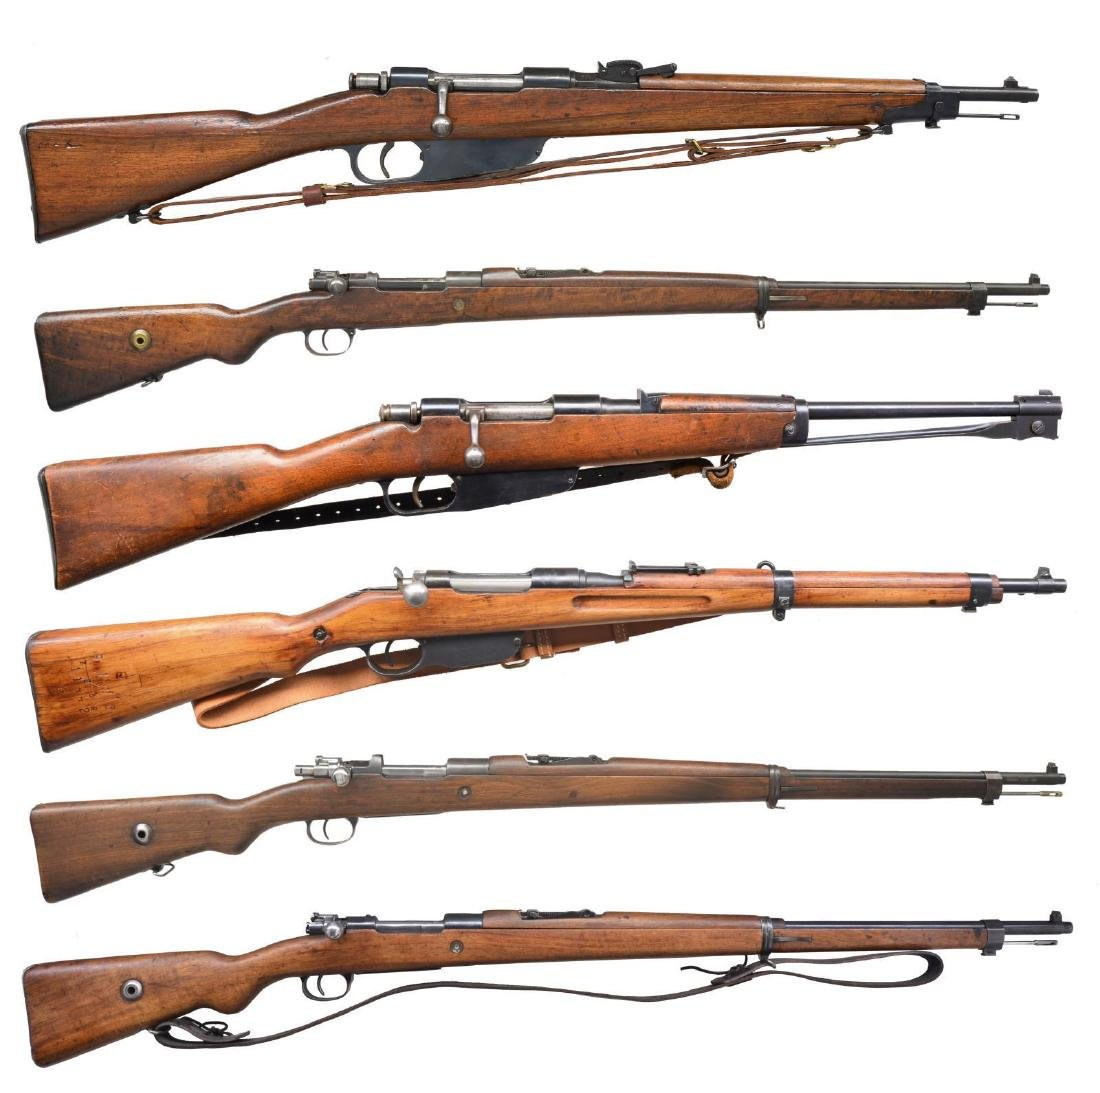 6 CURIO BOLT ACTION RIFLES.